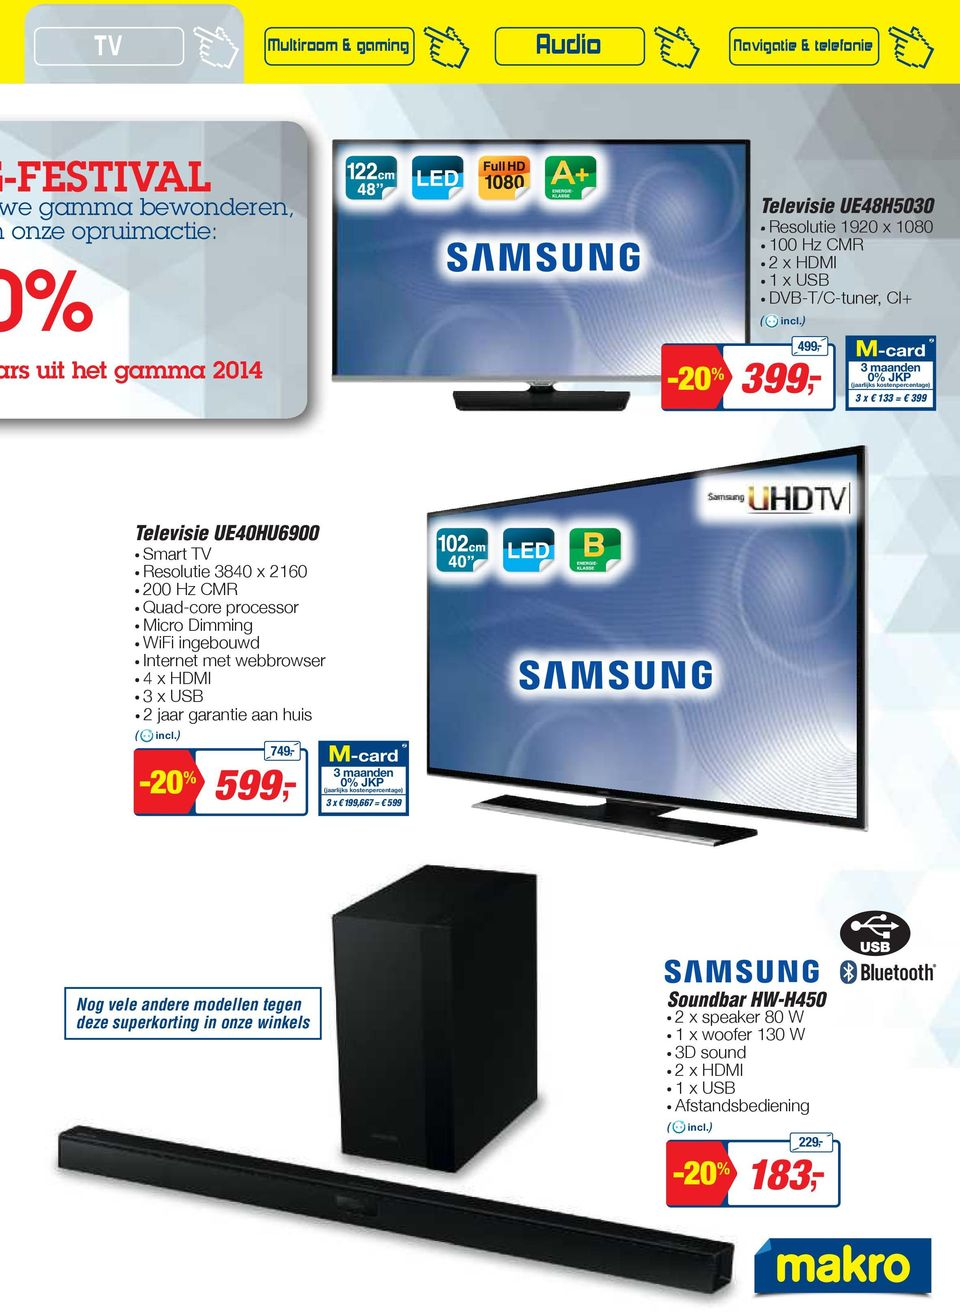 Quad-core processor. Micro Dimming. WiFi ingebouwd. Internet met webbrowser. 4 x HDMI. 3 x USB.